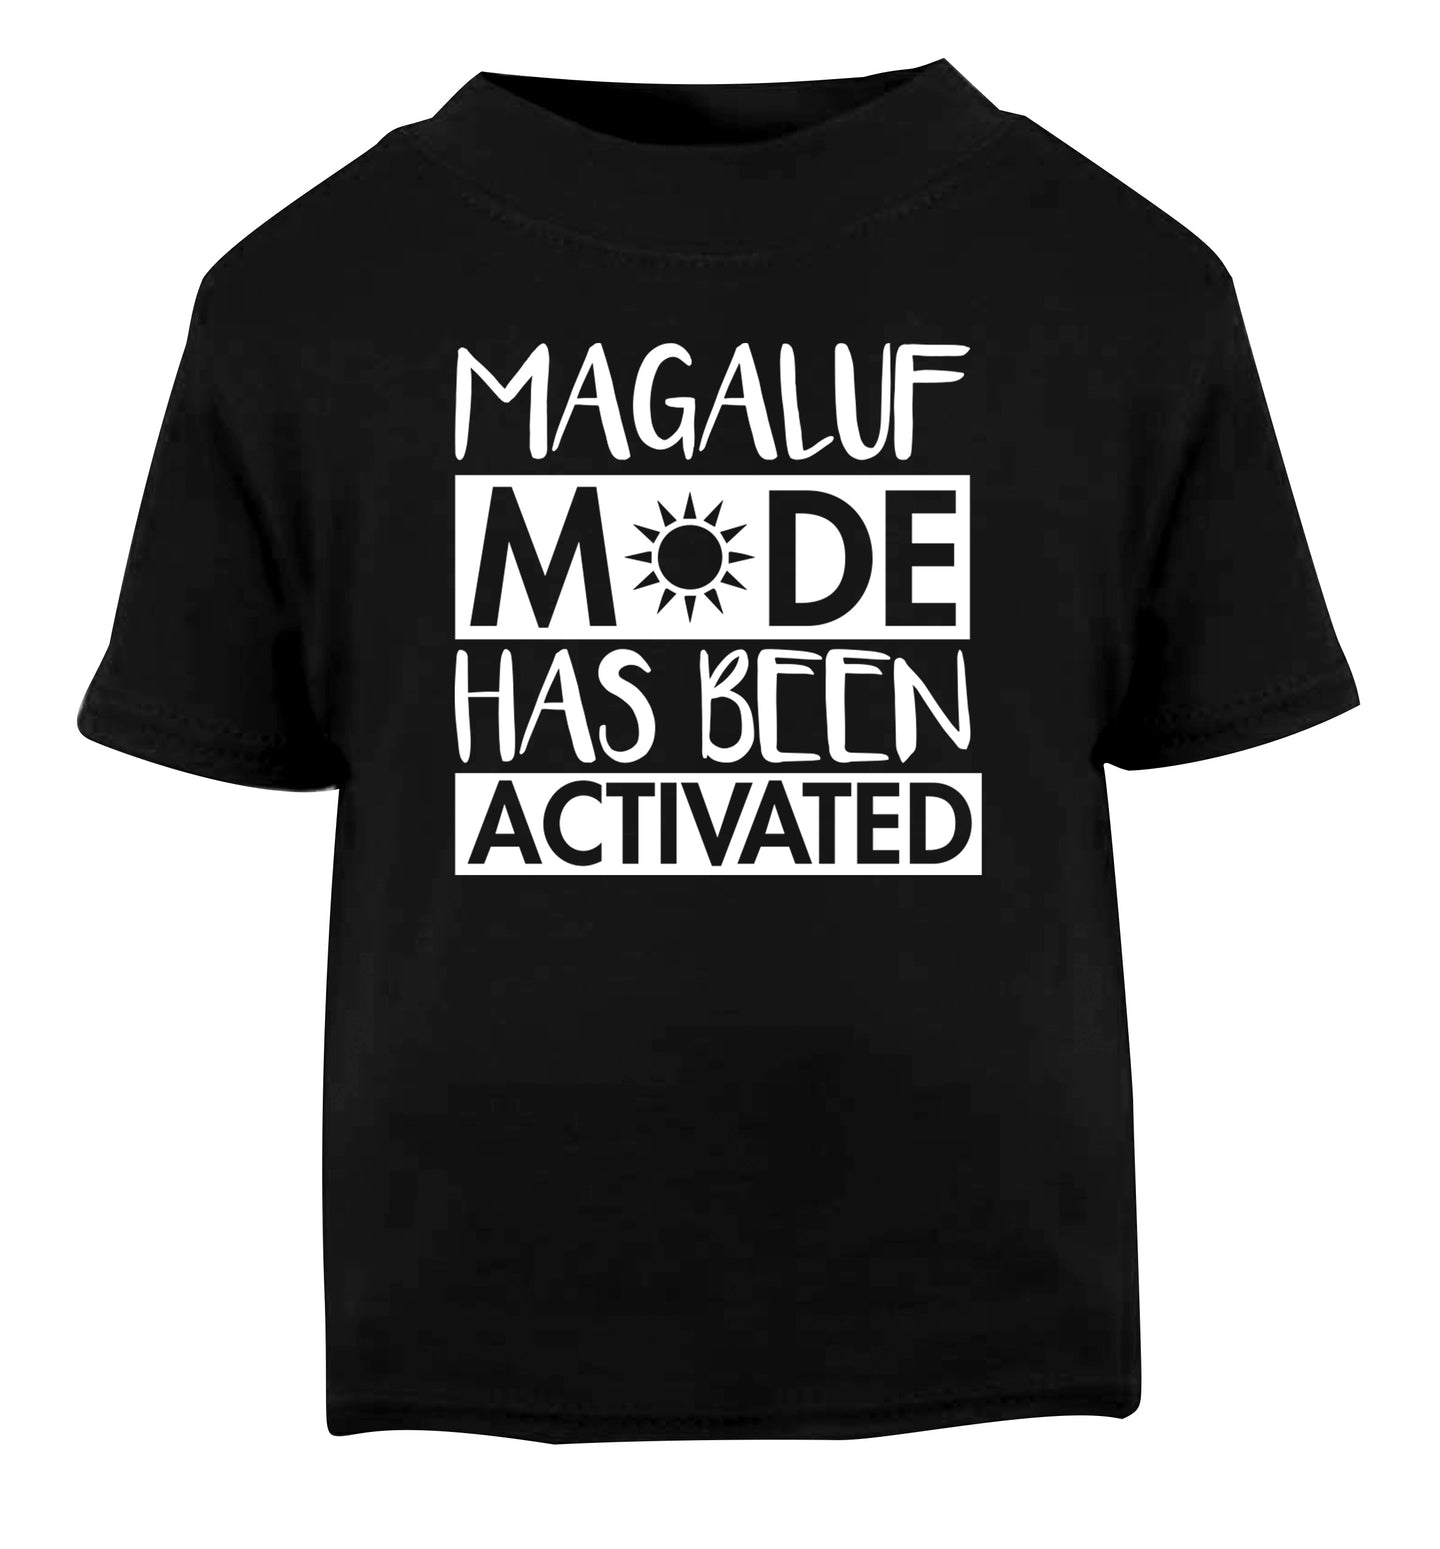 Magaluf mode has been activated Black Baby Toddler Tshirt 2 years